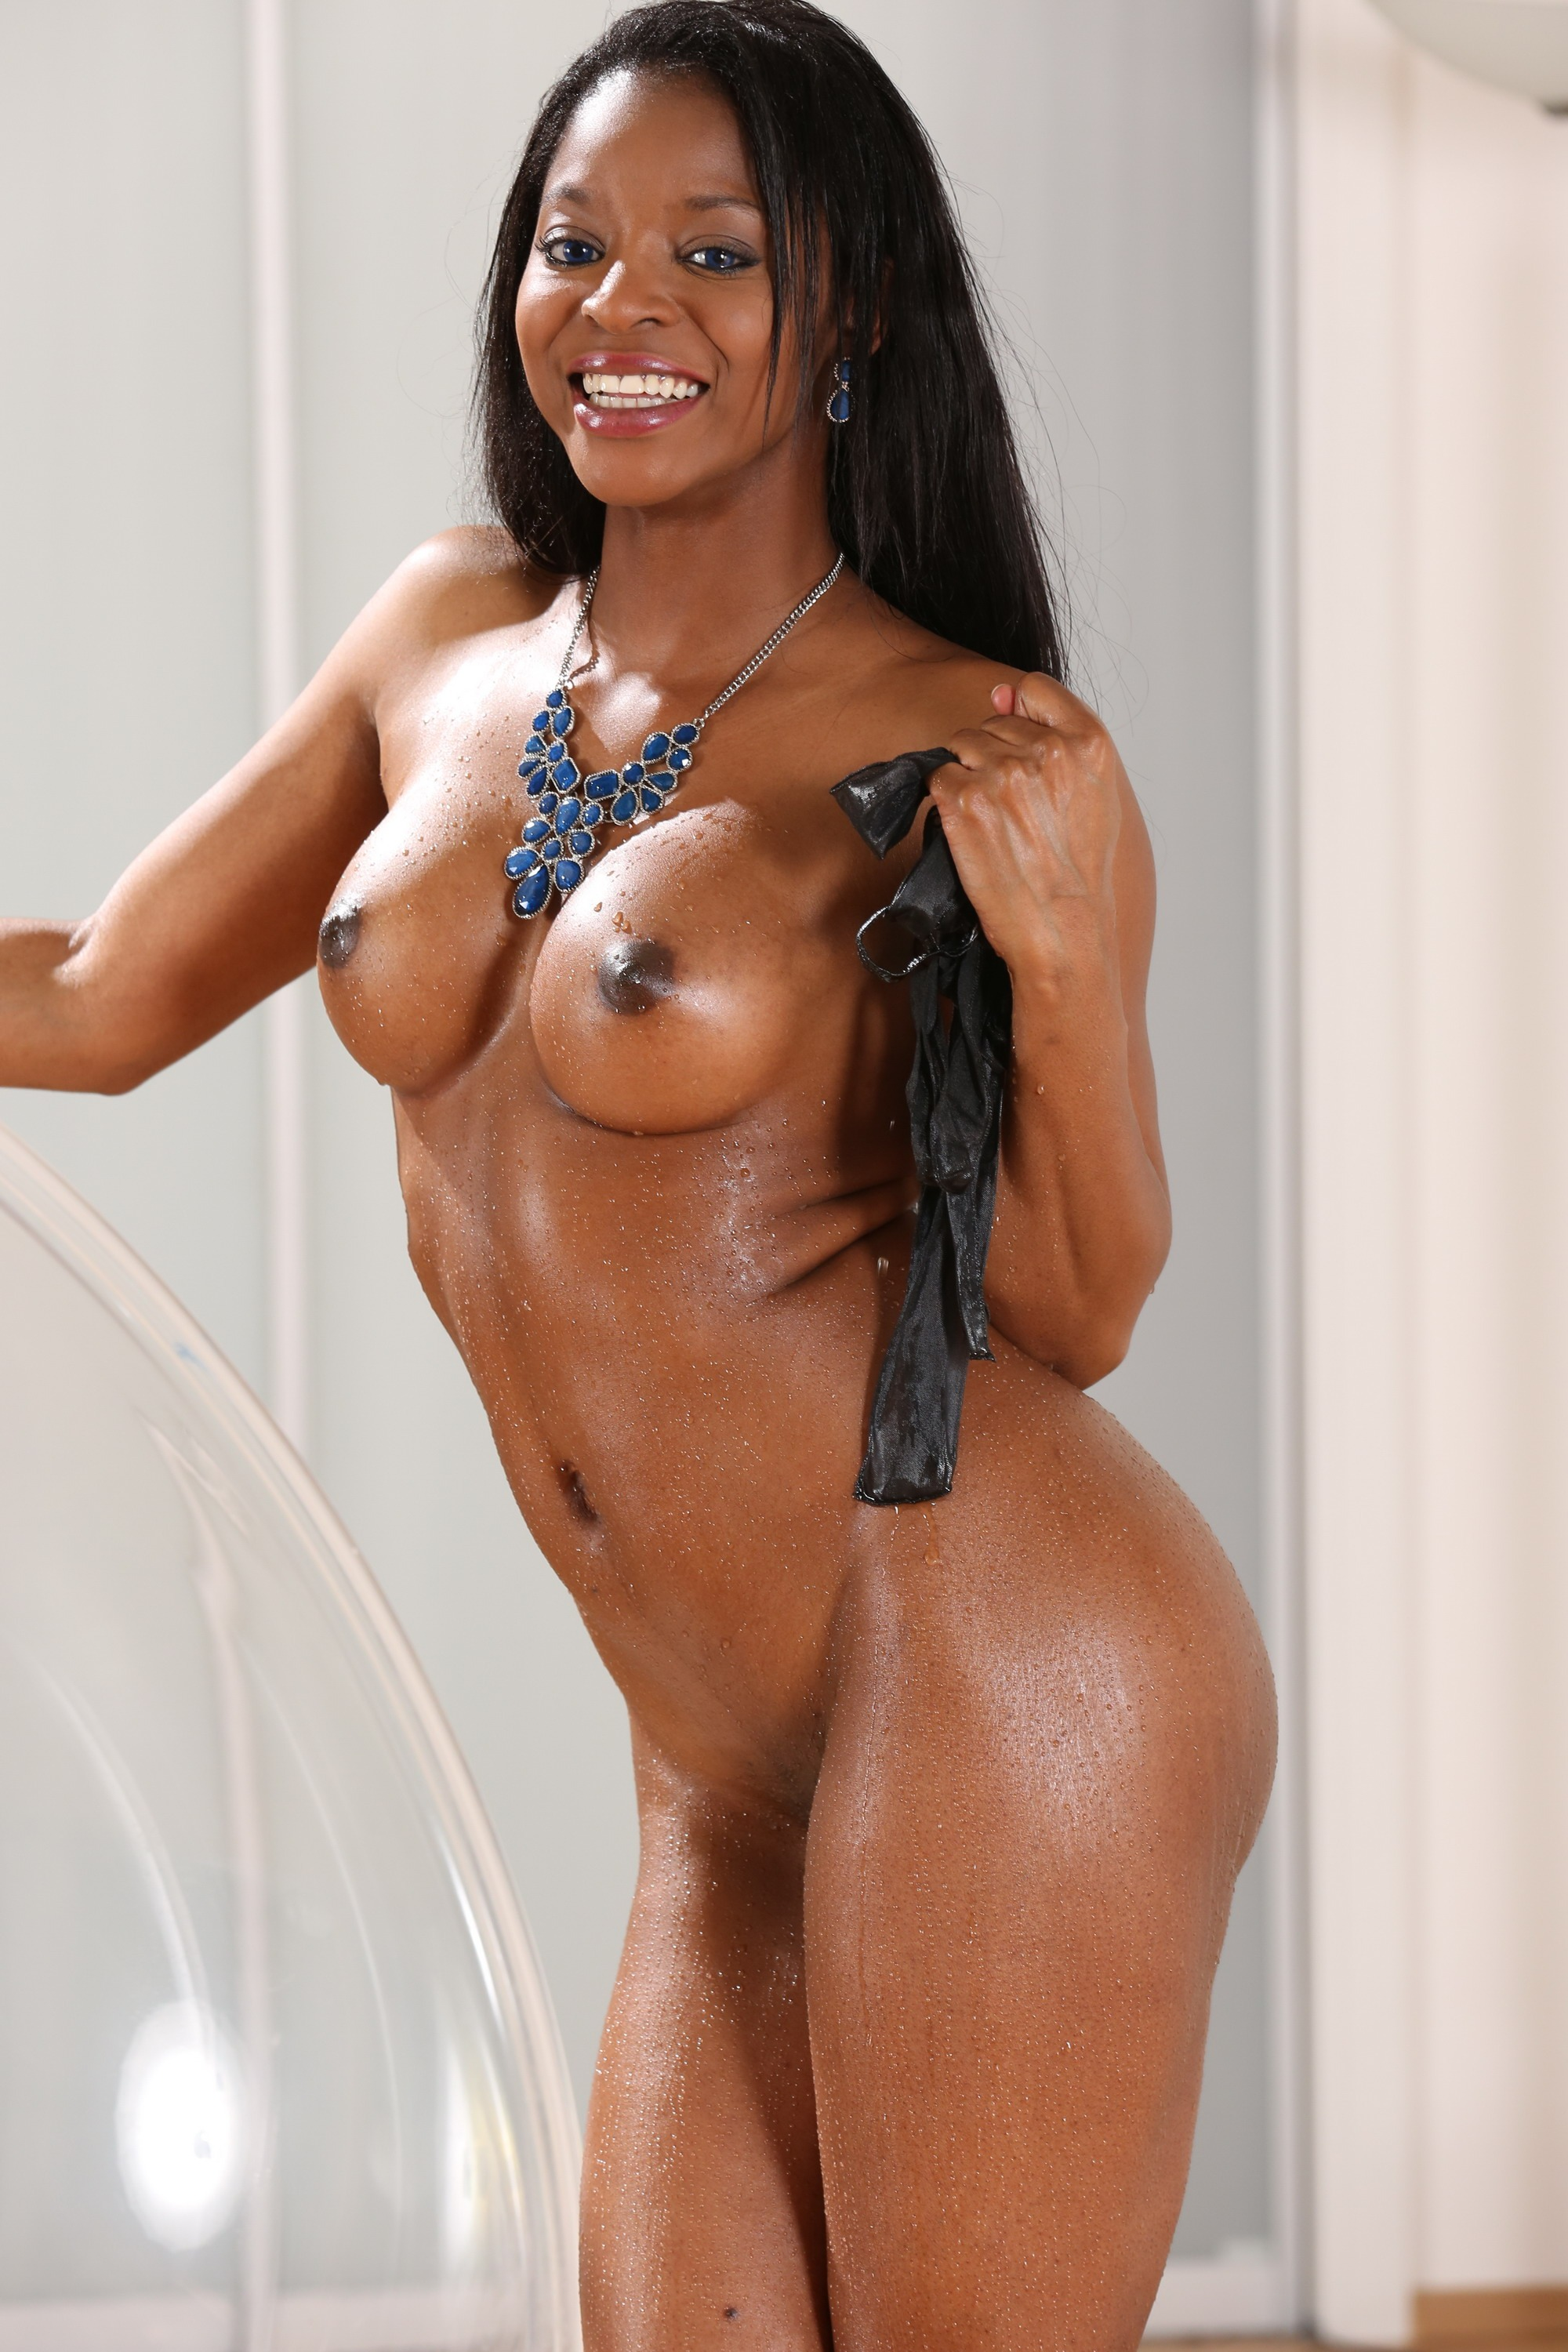 Anya ivy loves to show her big black boobs 5